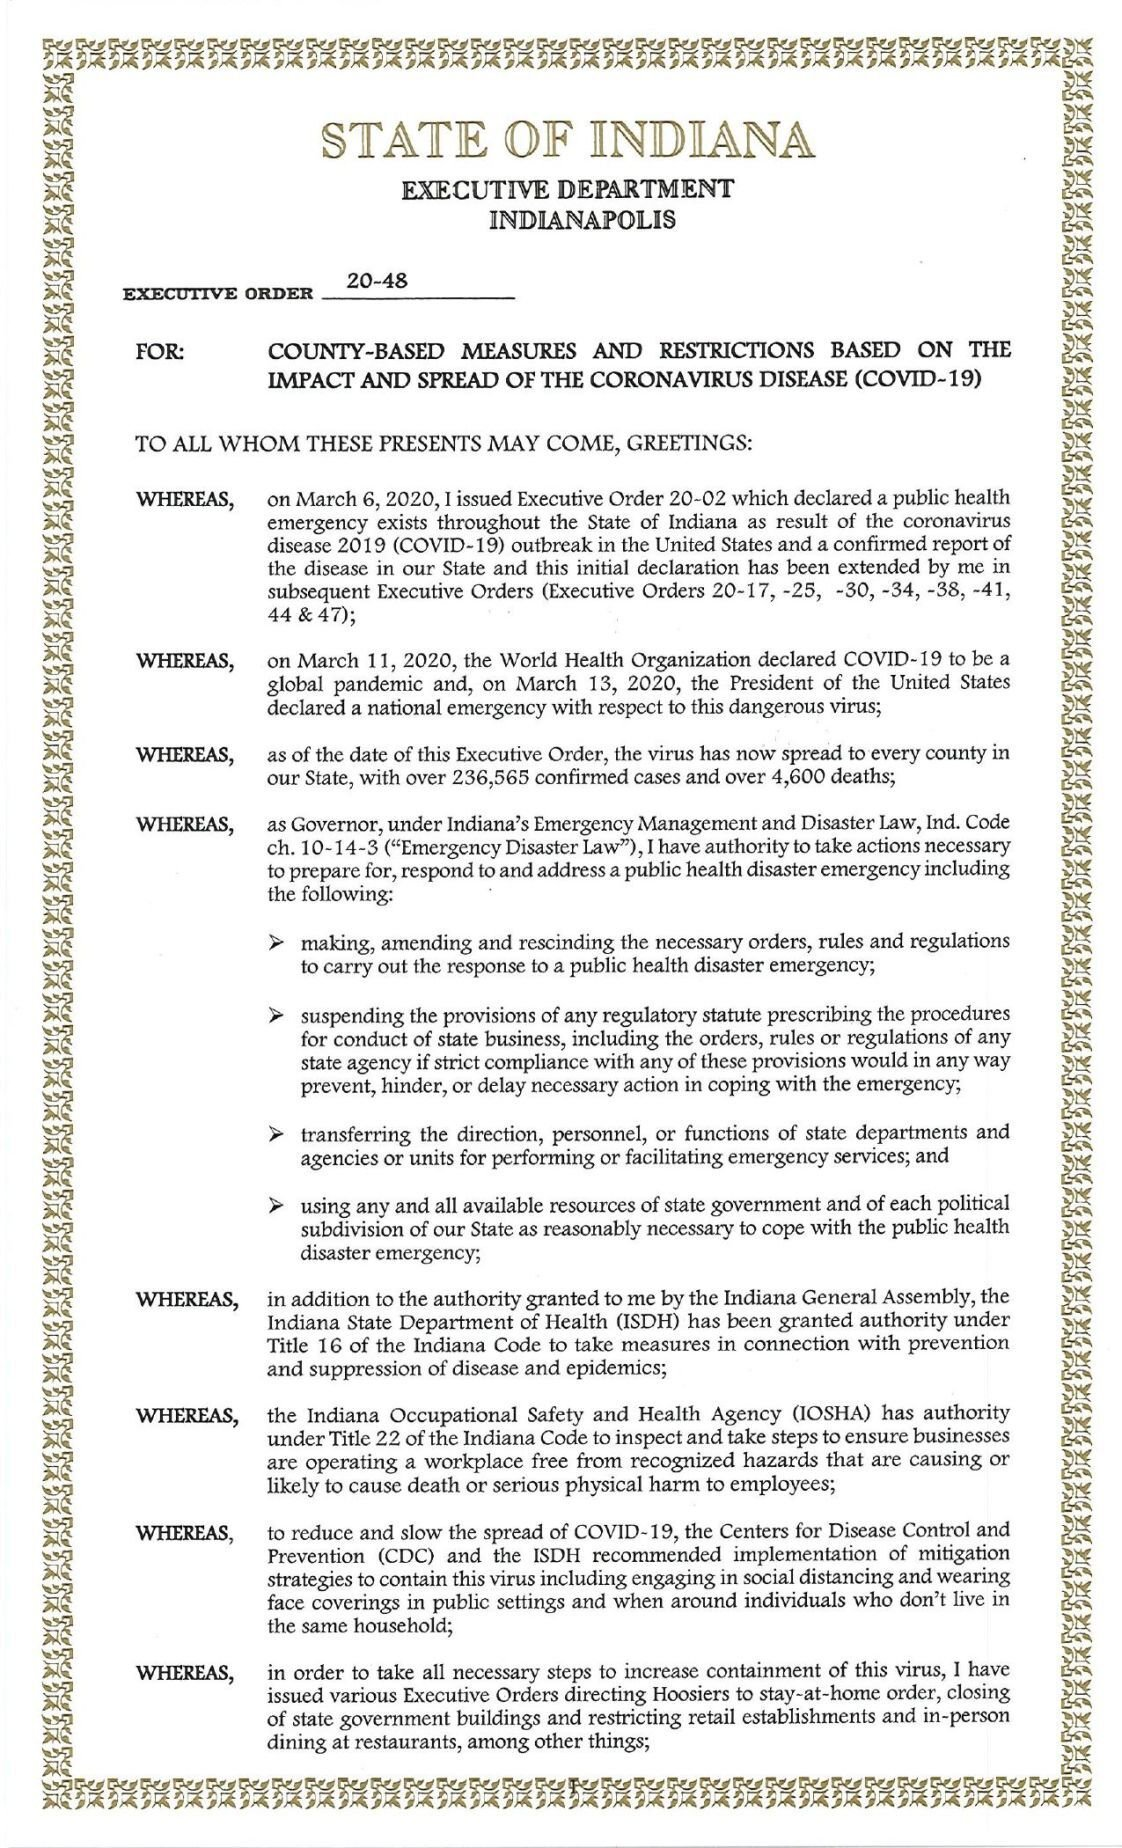 Gov. Eric Holcomb executive order 20-48